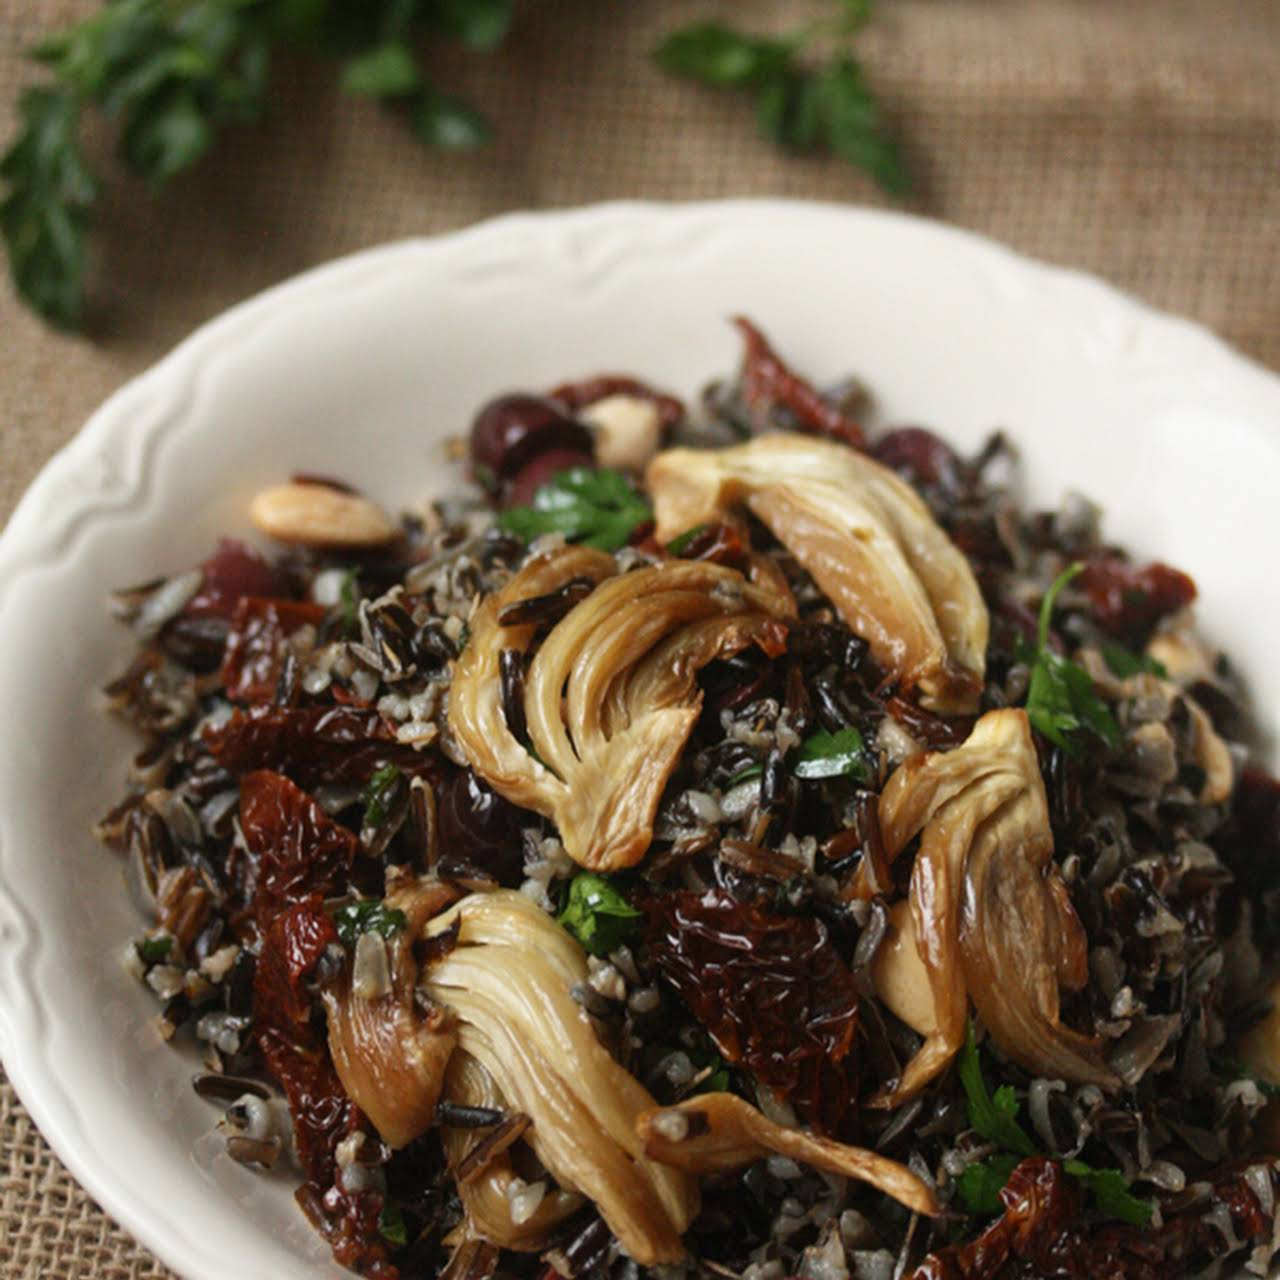 Wild Rice  similar to Roasted Fennel and Sun-Dried Tomatoes